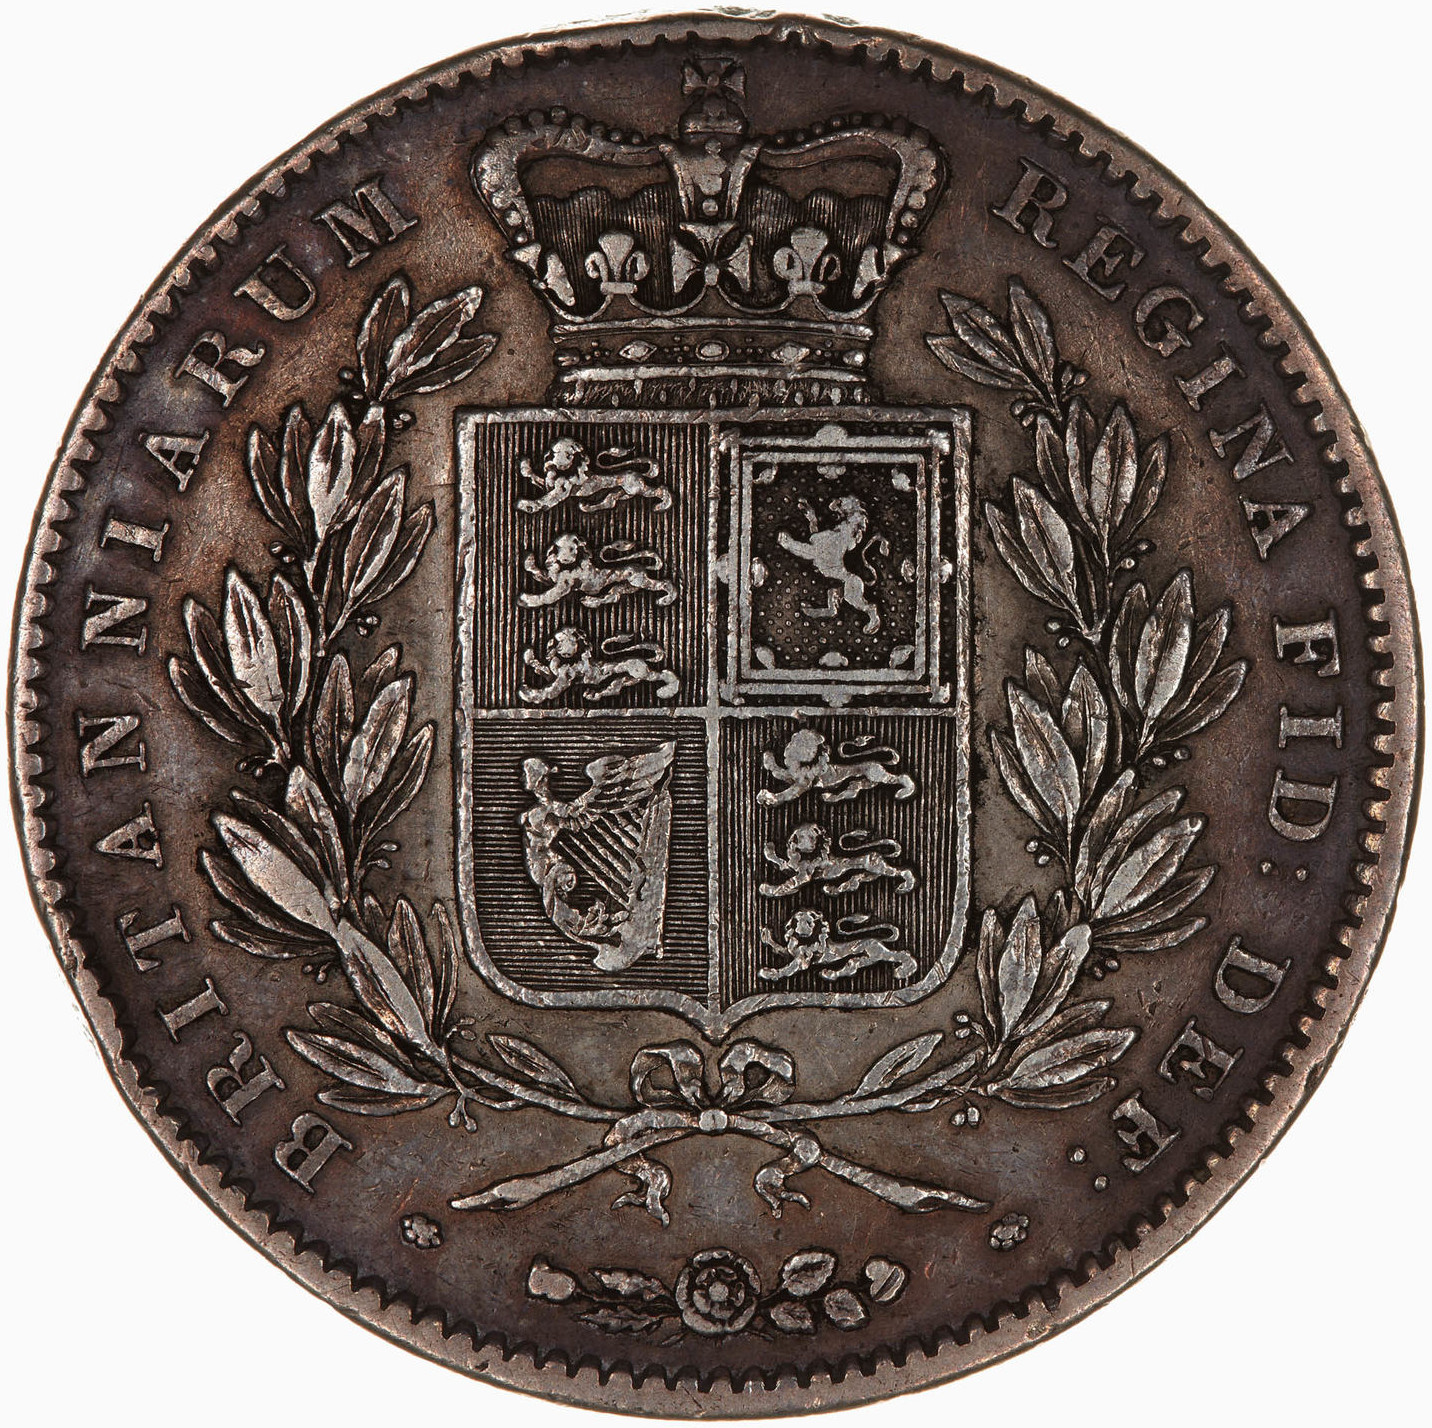 Crown 1847: Photo Coin - Crown, Queen Victoria, Great Britain, 1847